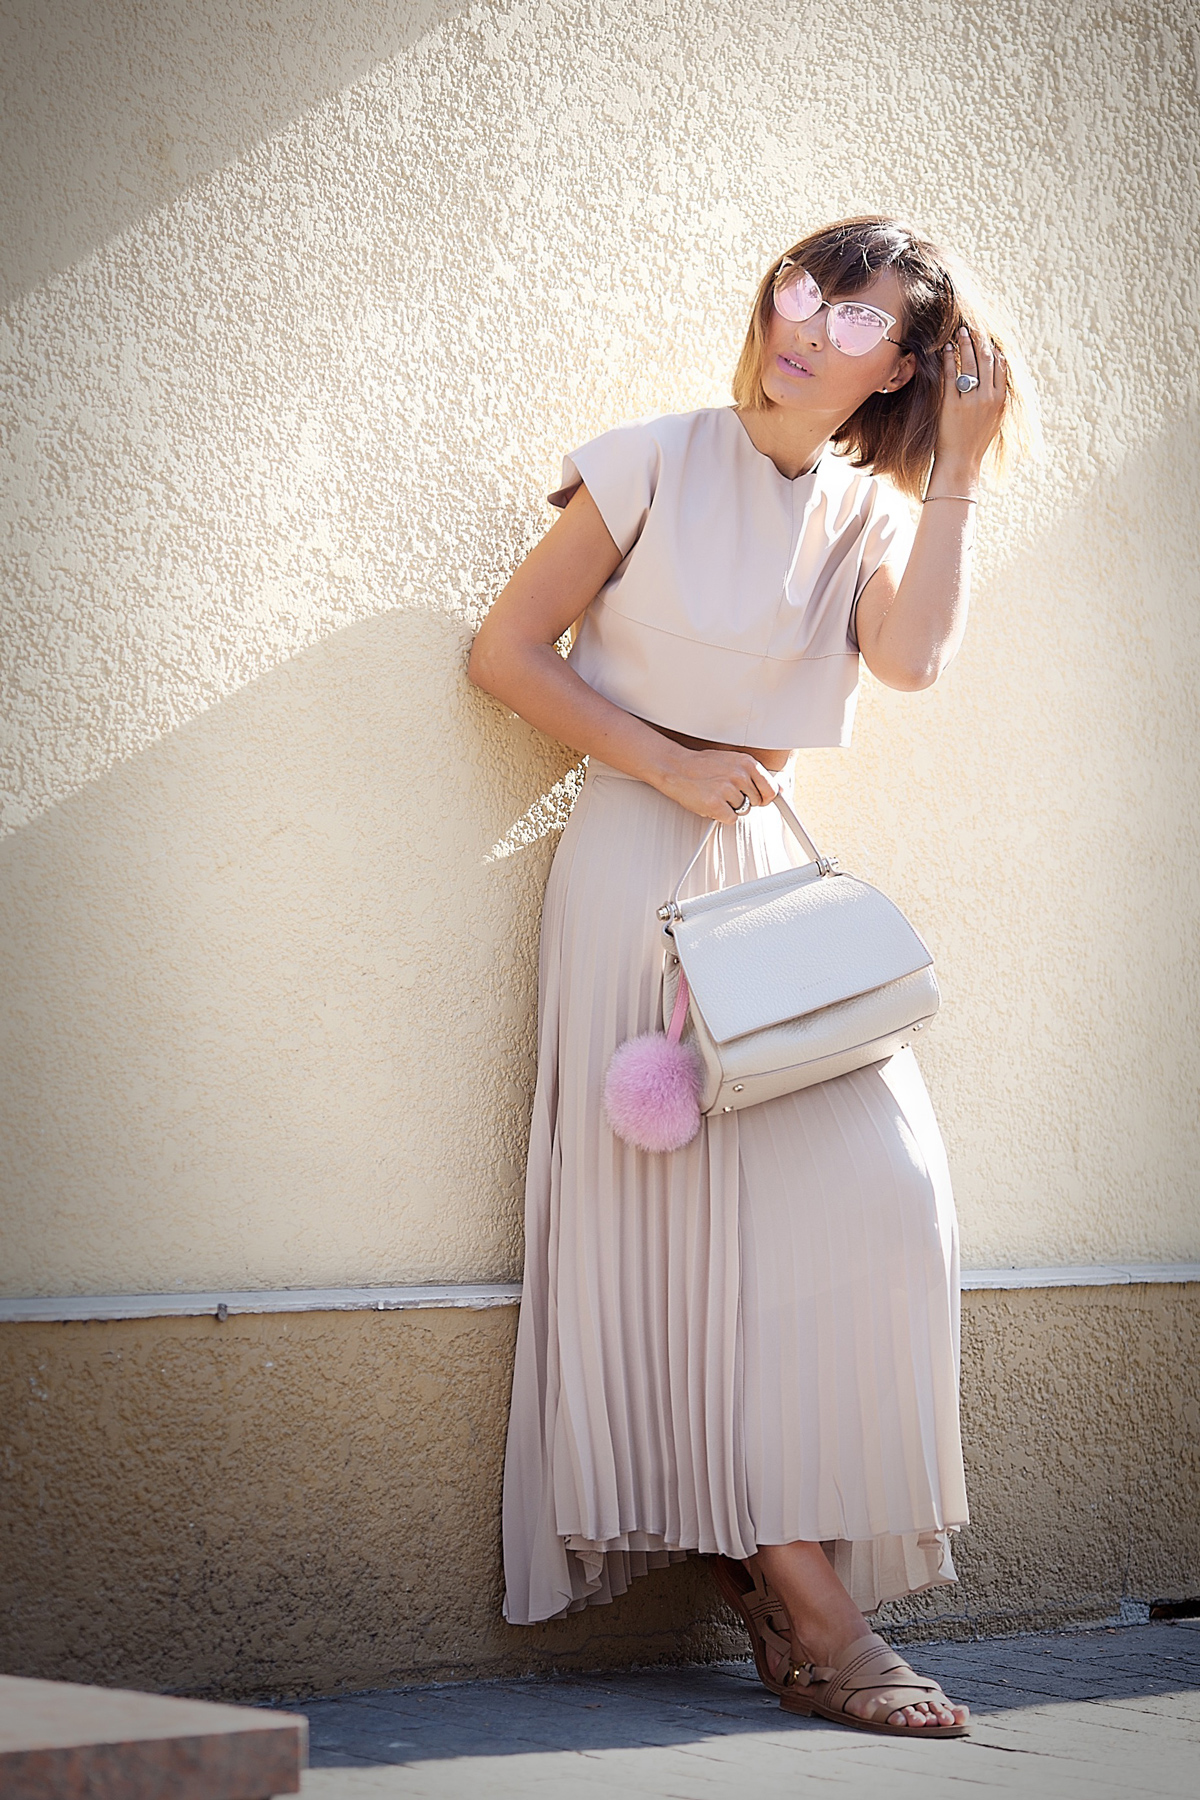 total-nude-outfit-for-hot-summer-galant-girl2